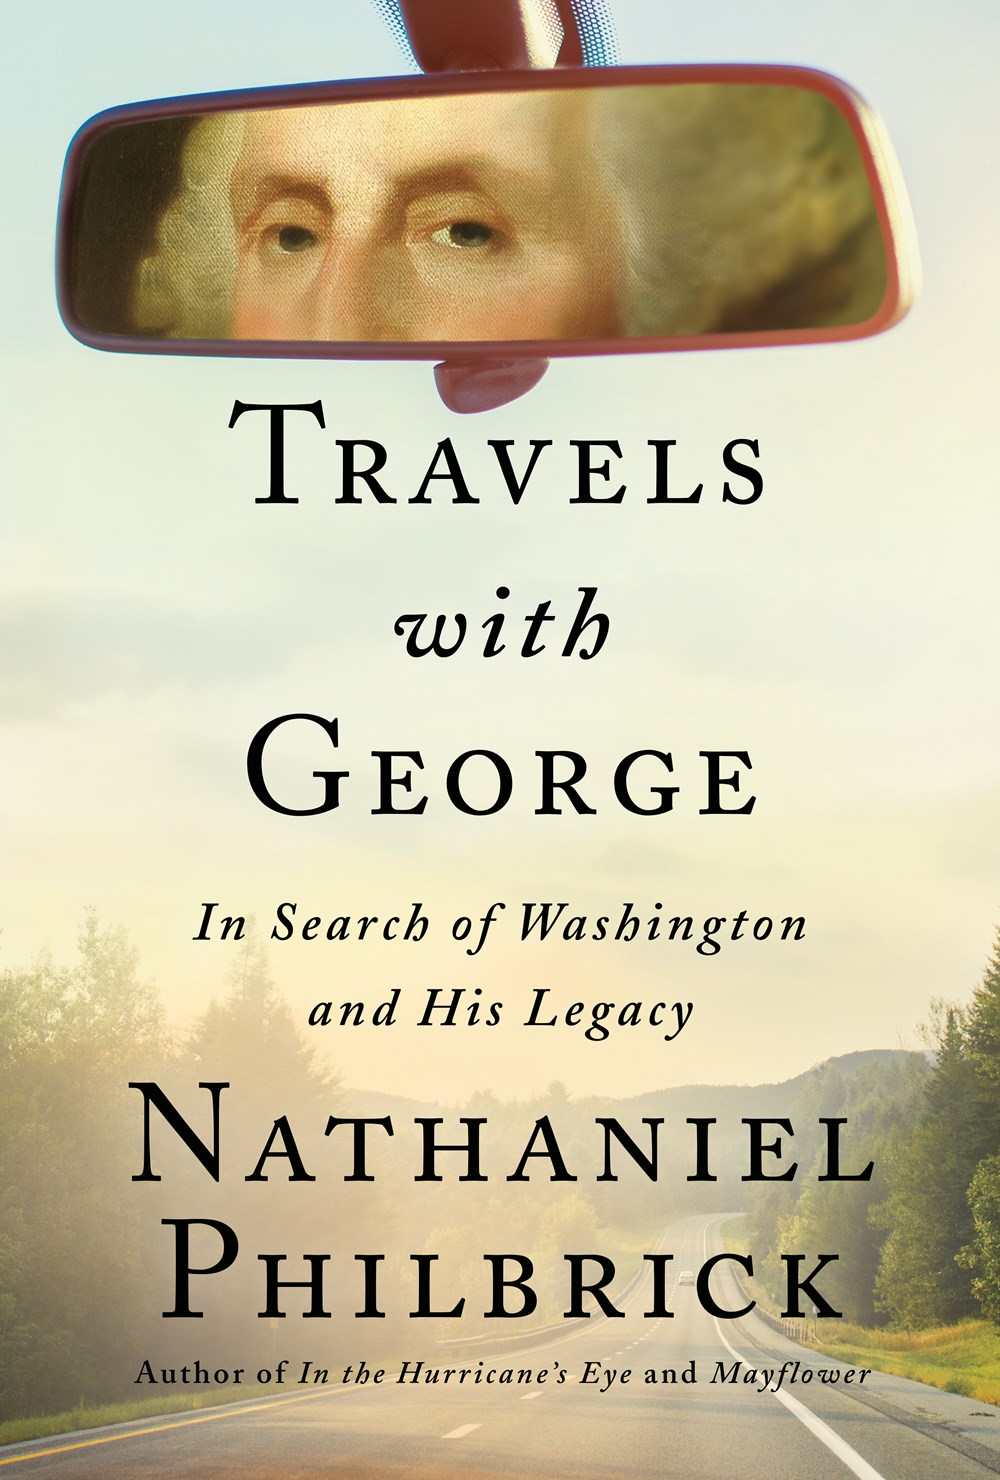 Travels with George cover image